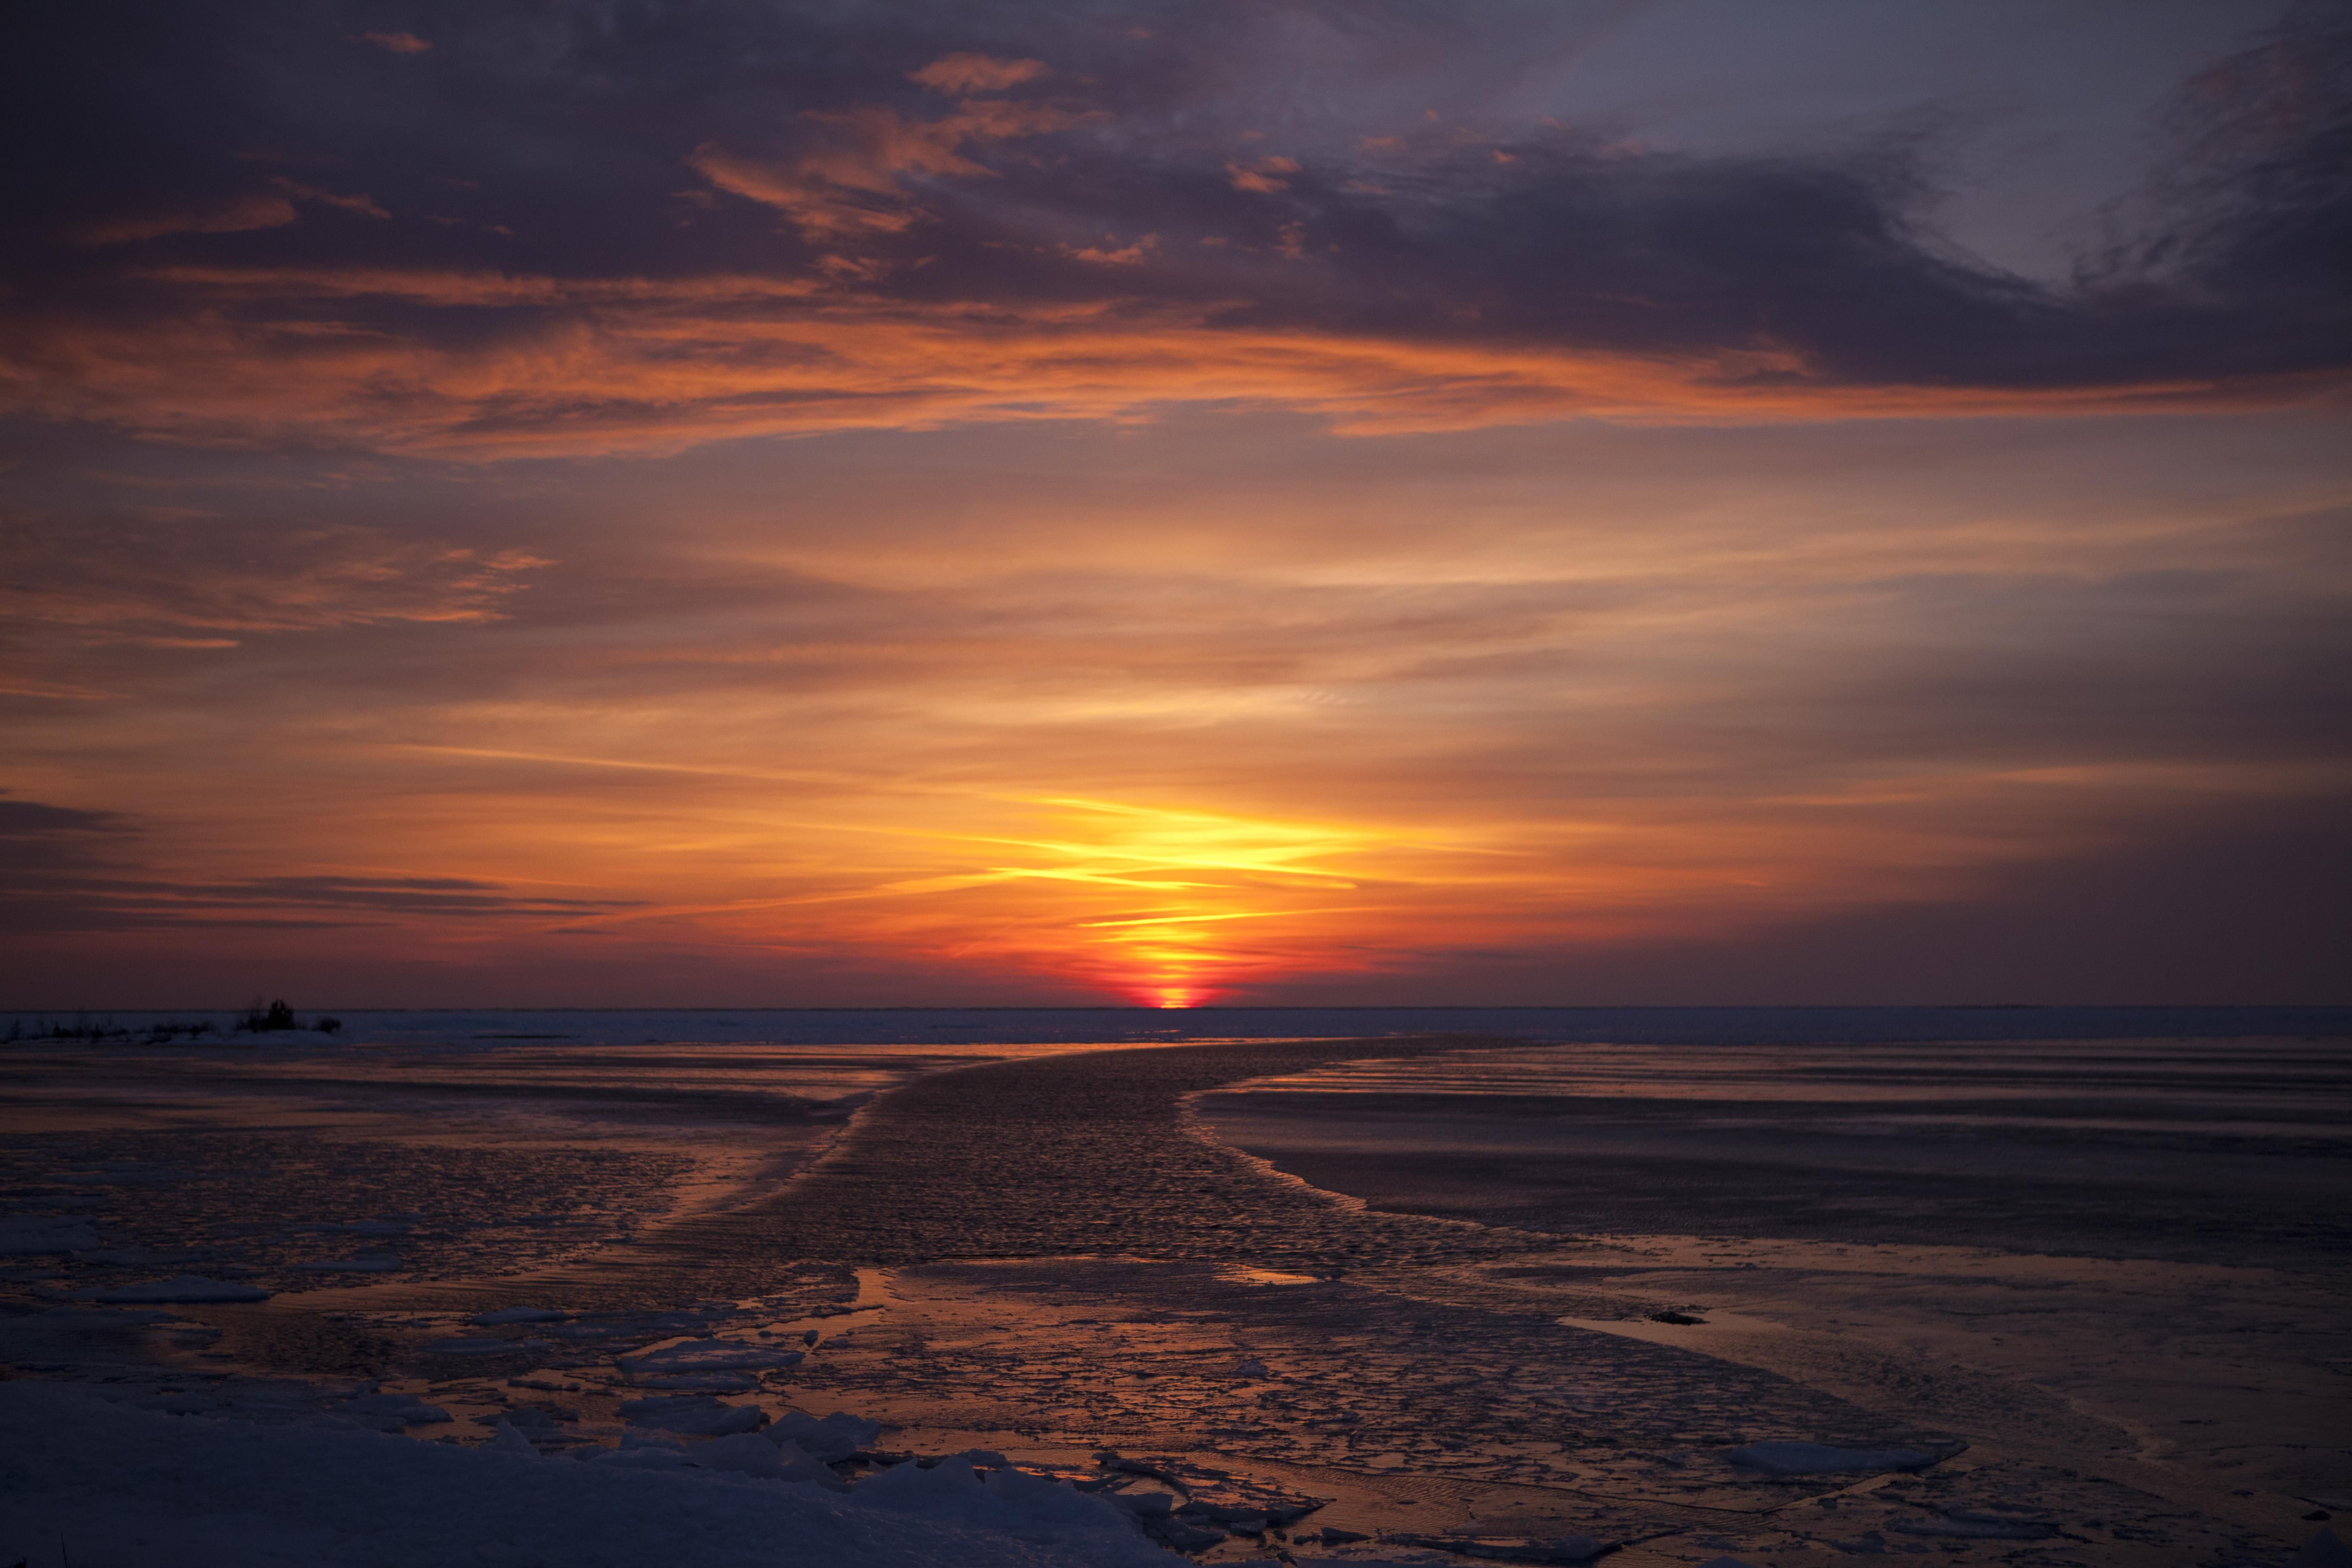 Sunset from Great Lake Huron in Tobermory Ontario by Nikki Morrison